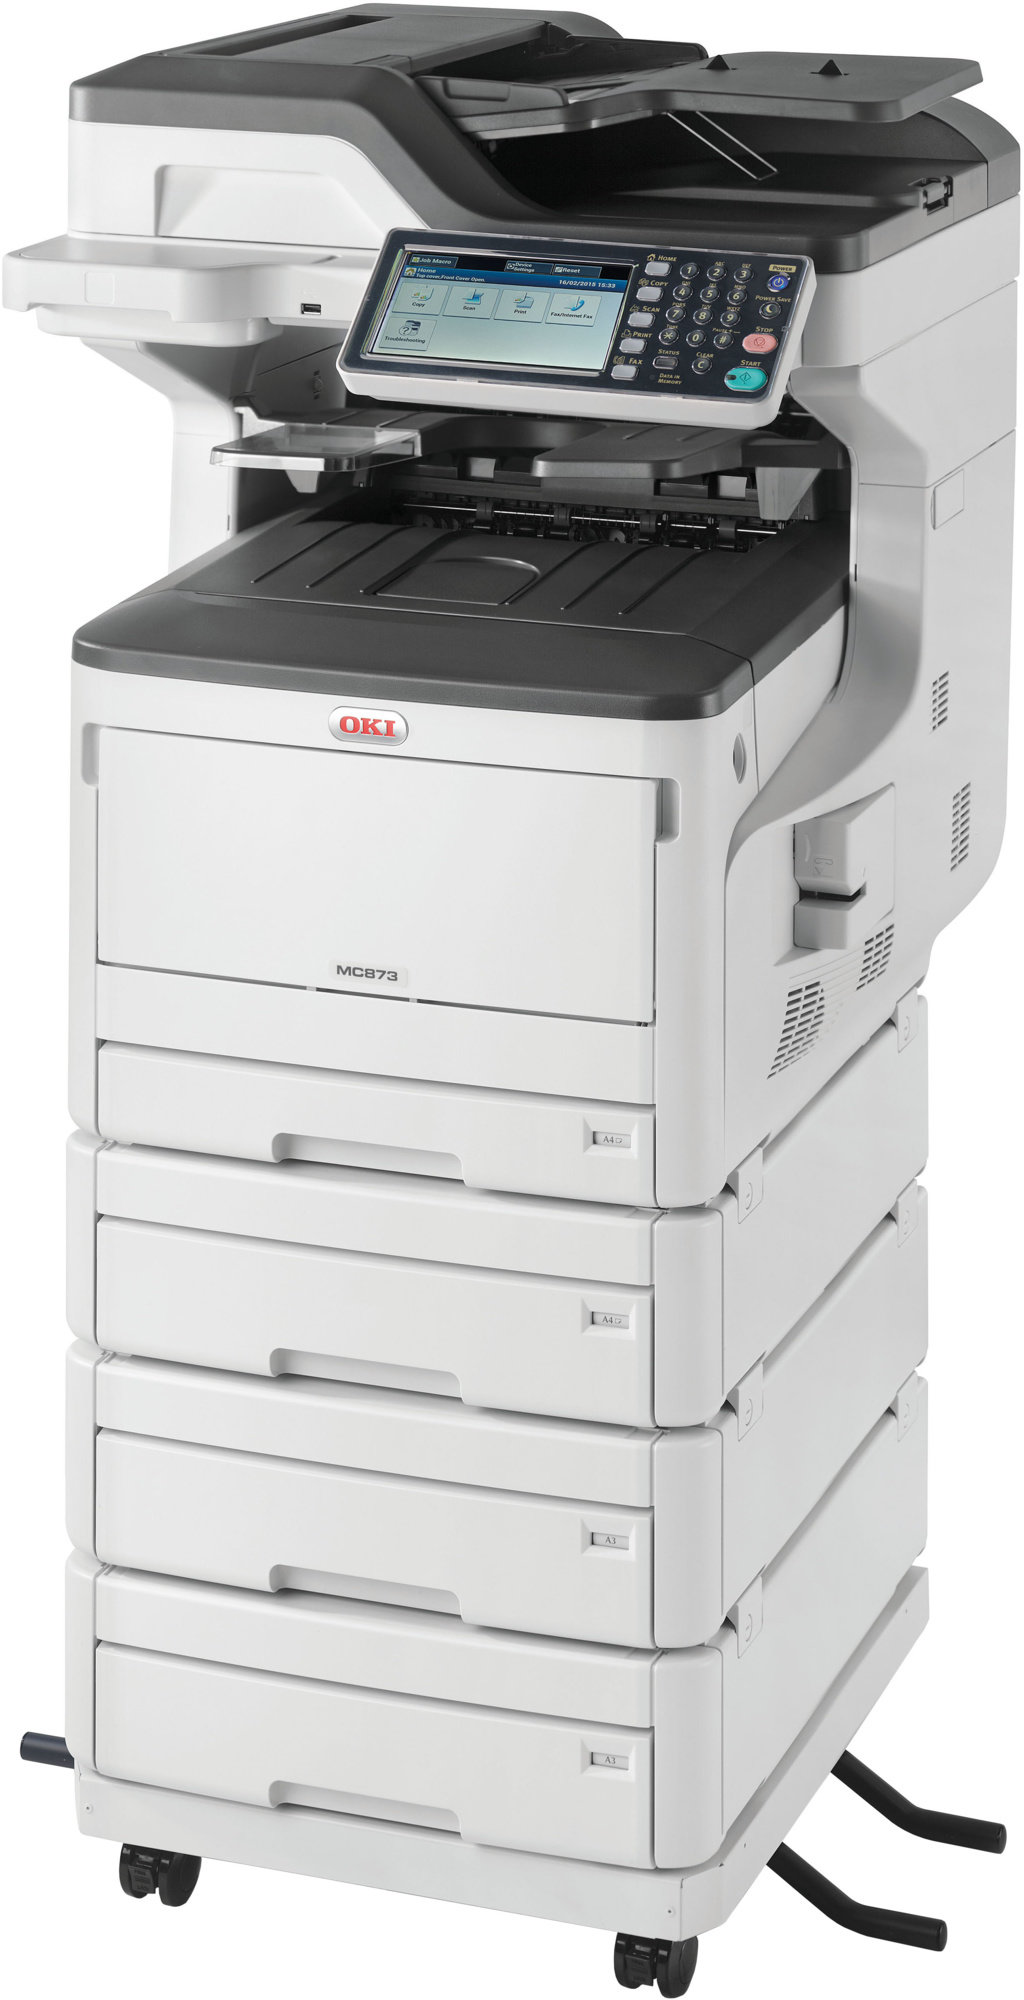 Oki MC873dnv A3 35ppm ProQ2400DPI, PCL/PS,USB,LAN (Print/Scan/Copy/Fax), 250GB HDD